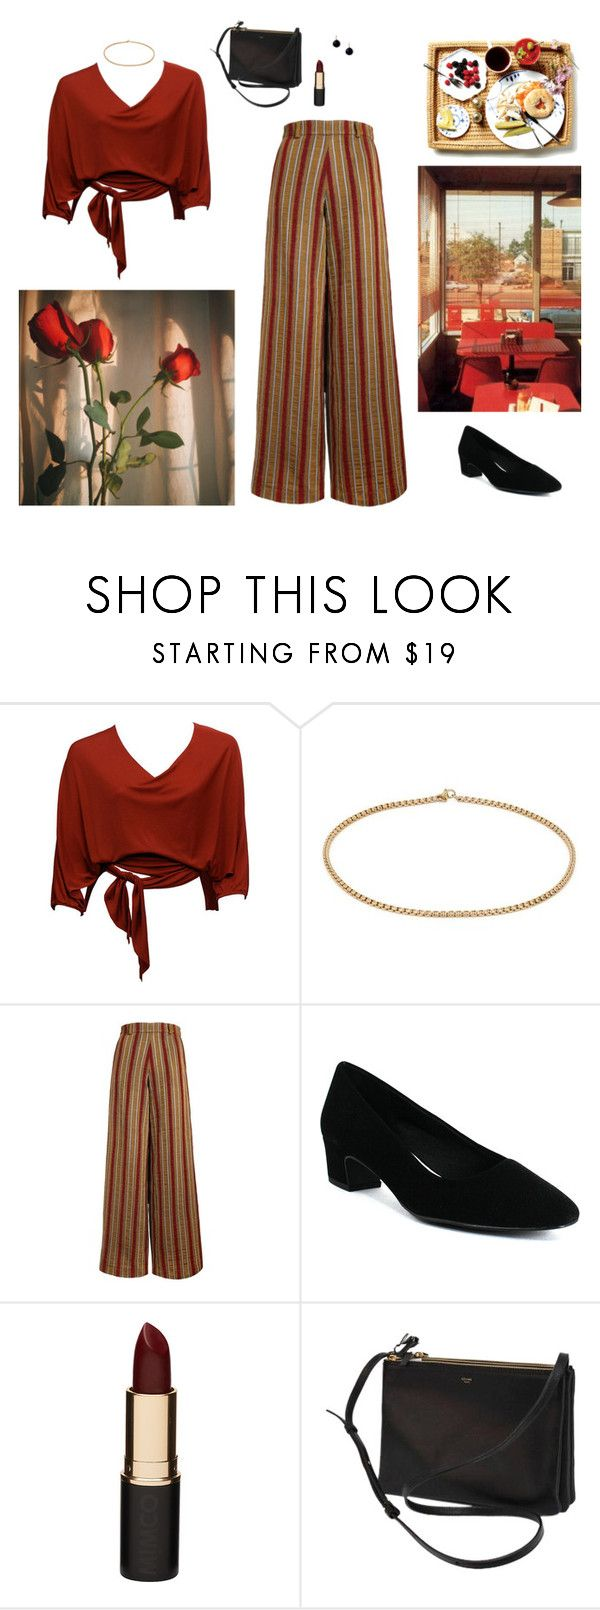 """""""Untitled #106"""" by cizinec ❤ liked on Polyvore featuring The Bee's Sneeze, Easy Street, Mimco, CÉLINE and Coralia Leets"""